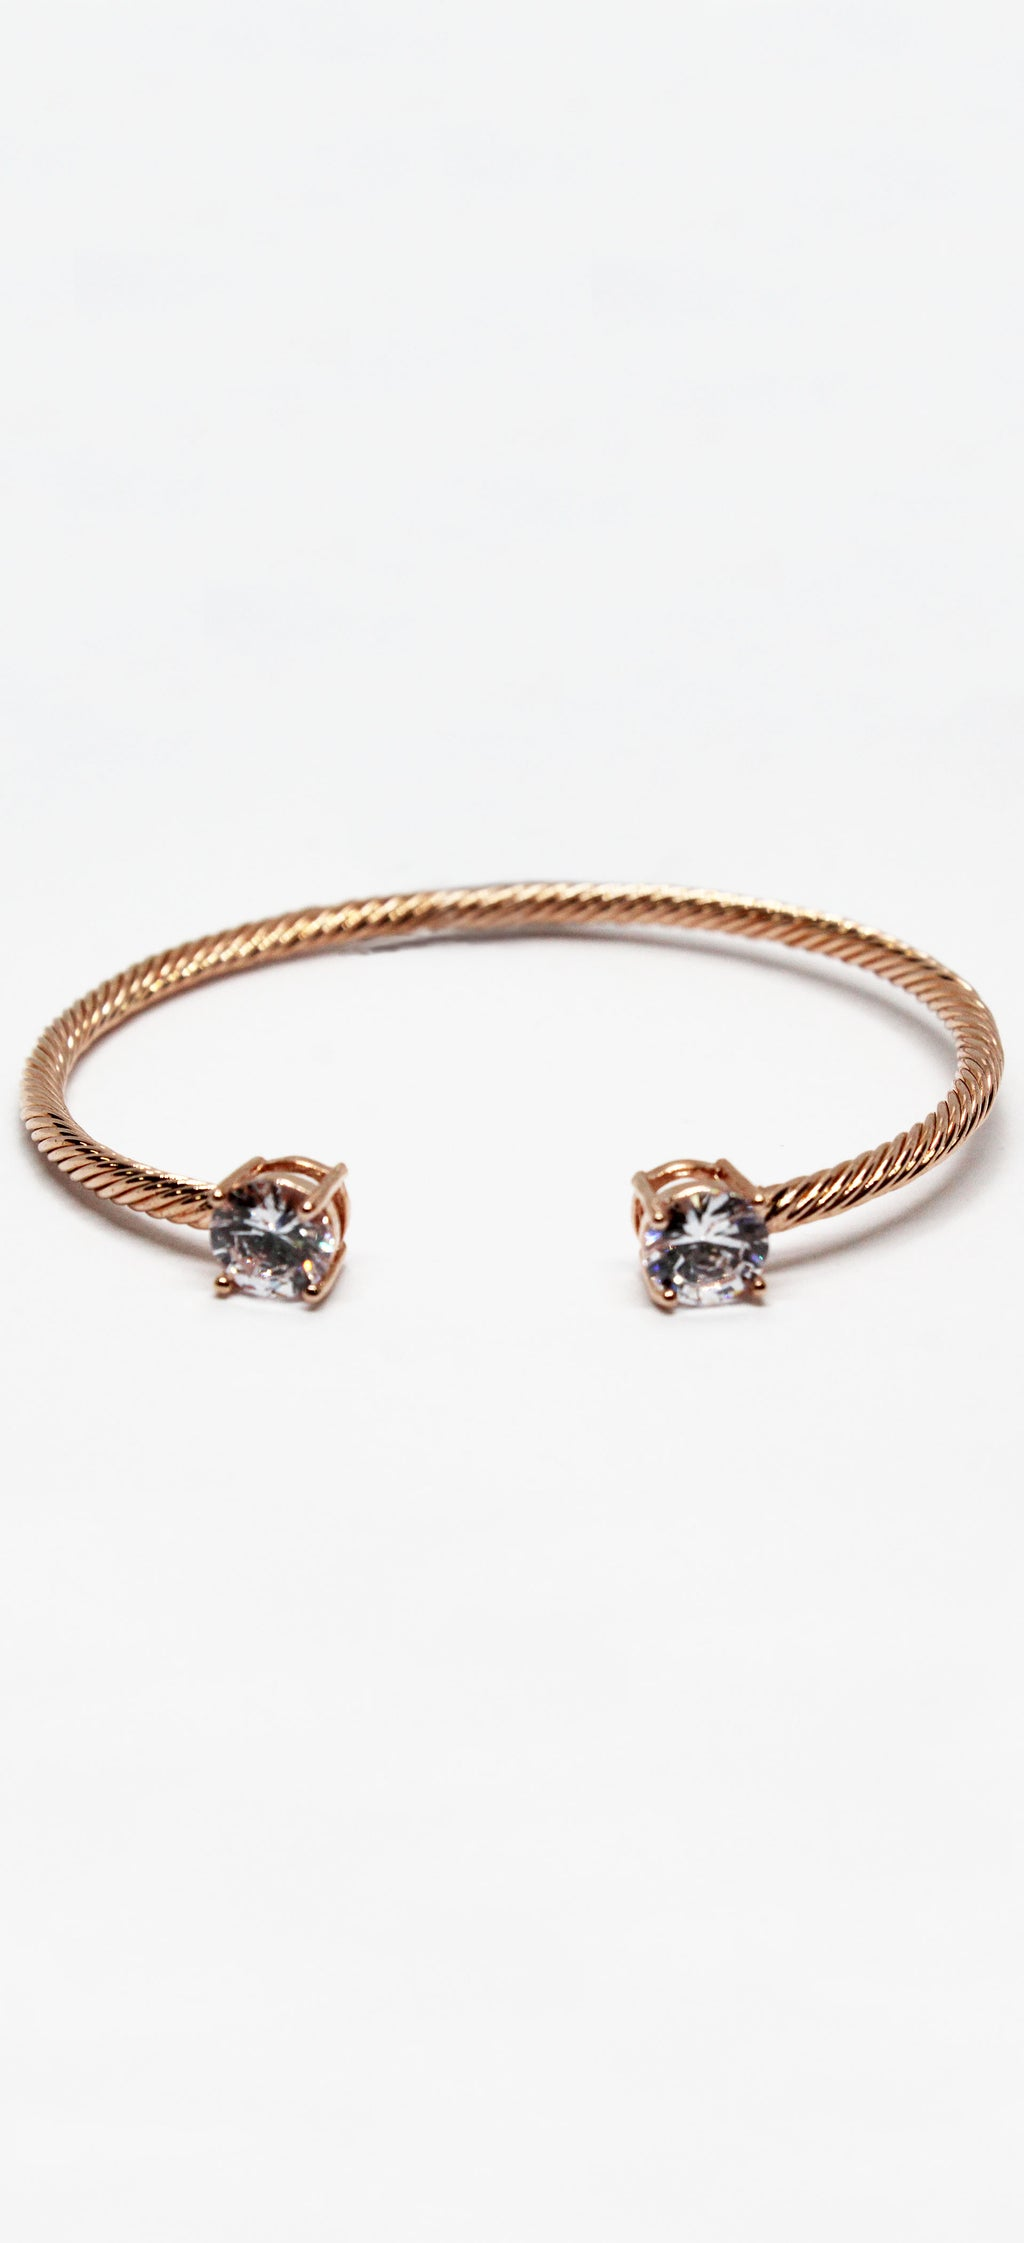 Let's Shine Rose Gold Bracelet